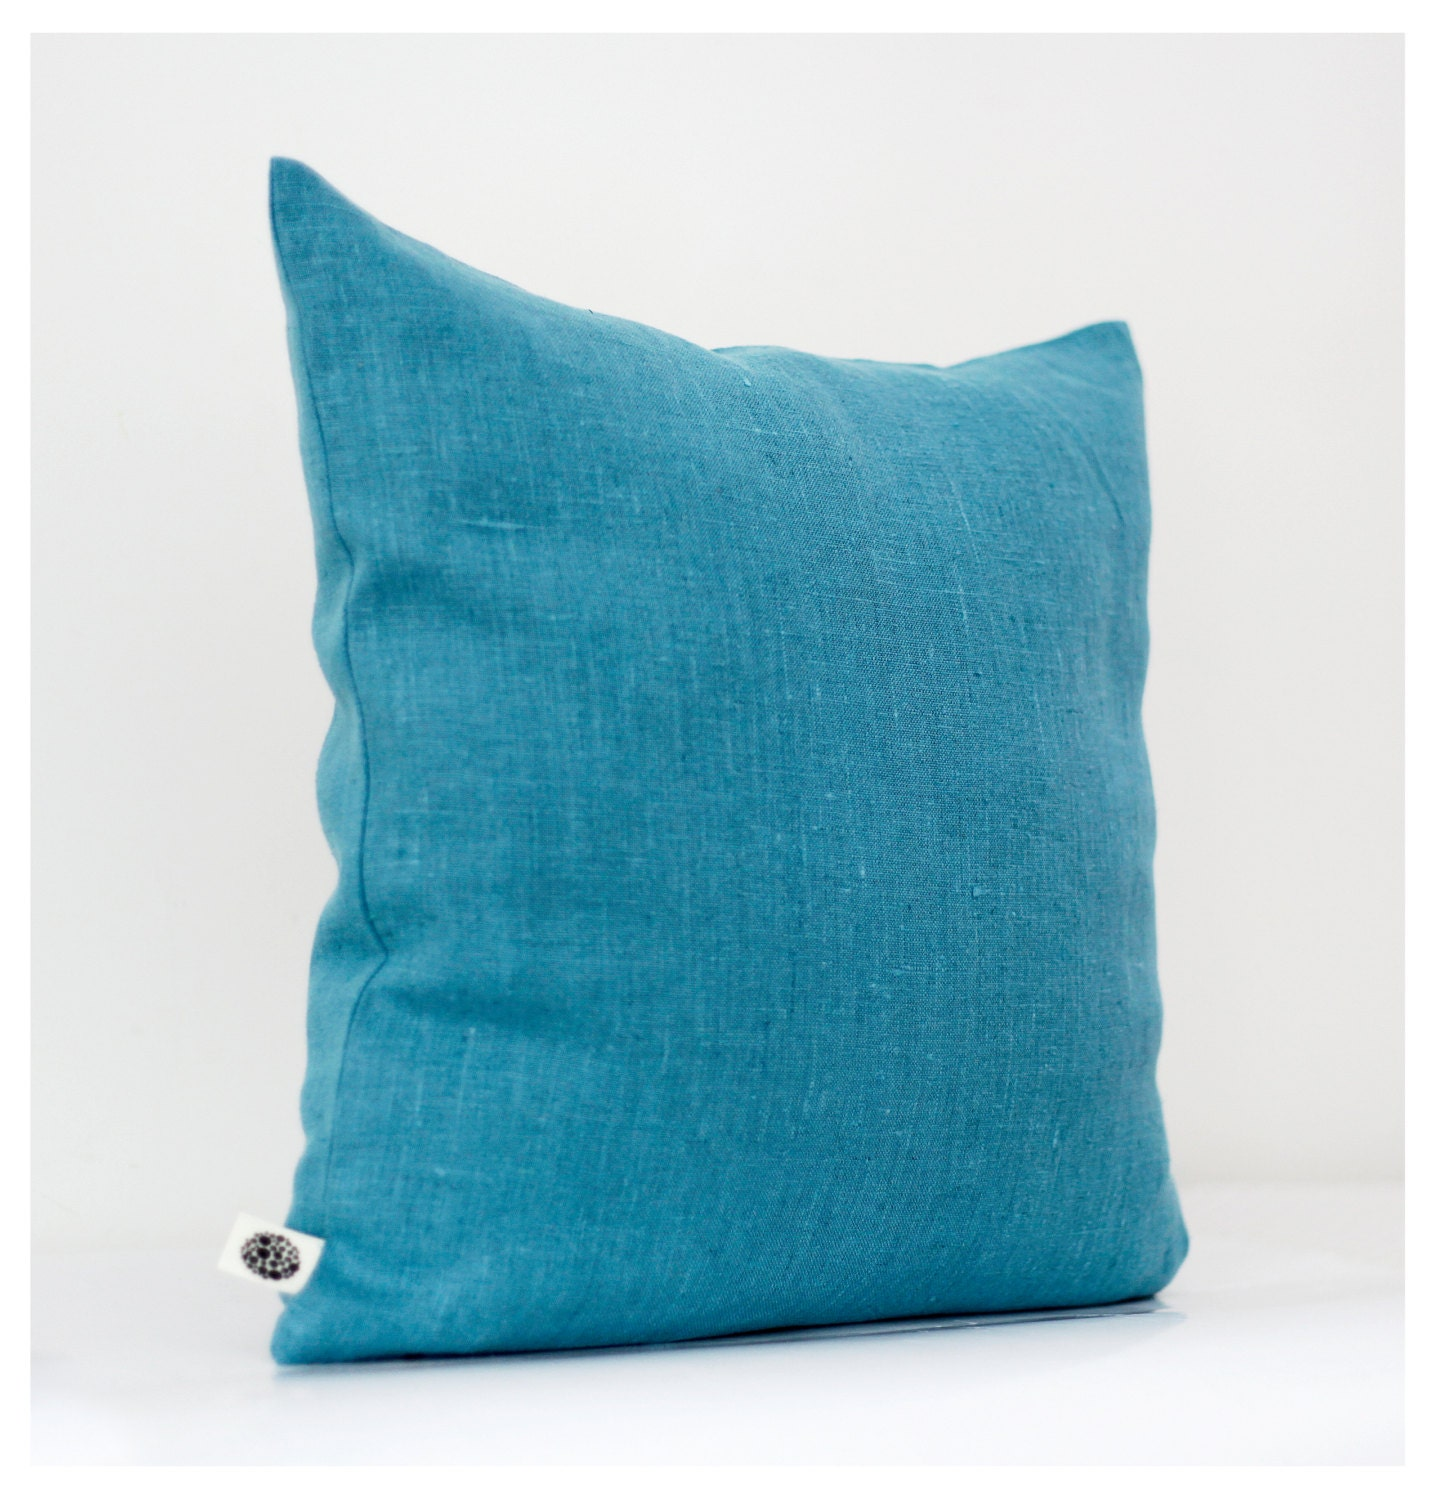 Throw Pillow Turquoise : Blue turquoise pillow cover decorative pillows shams